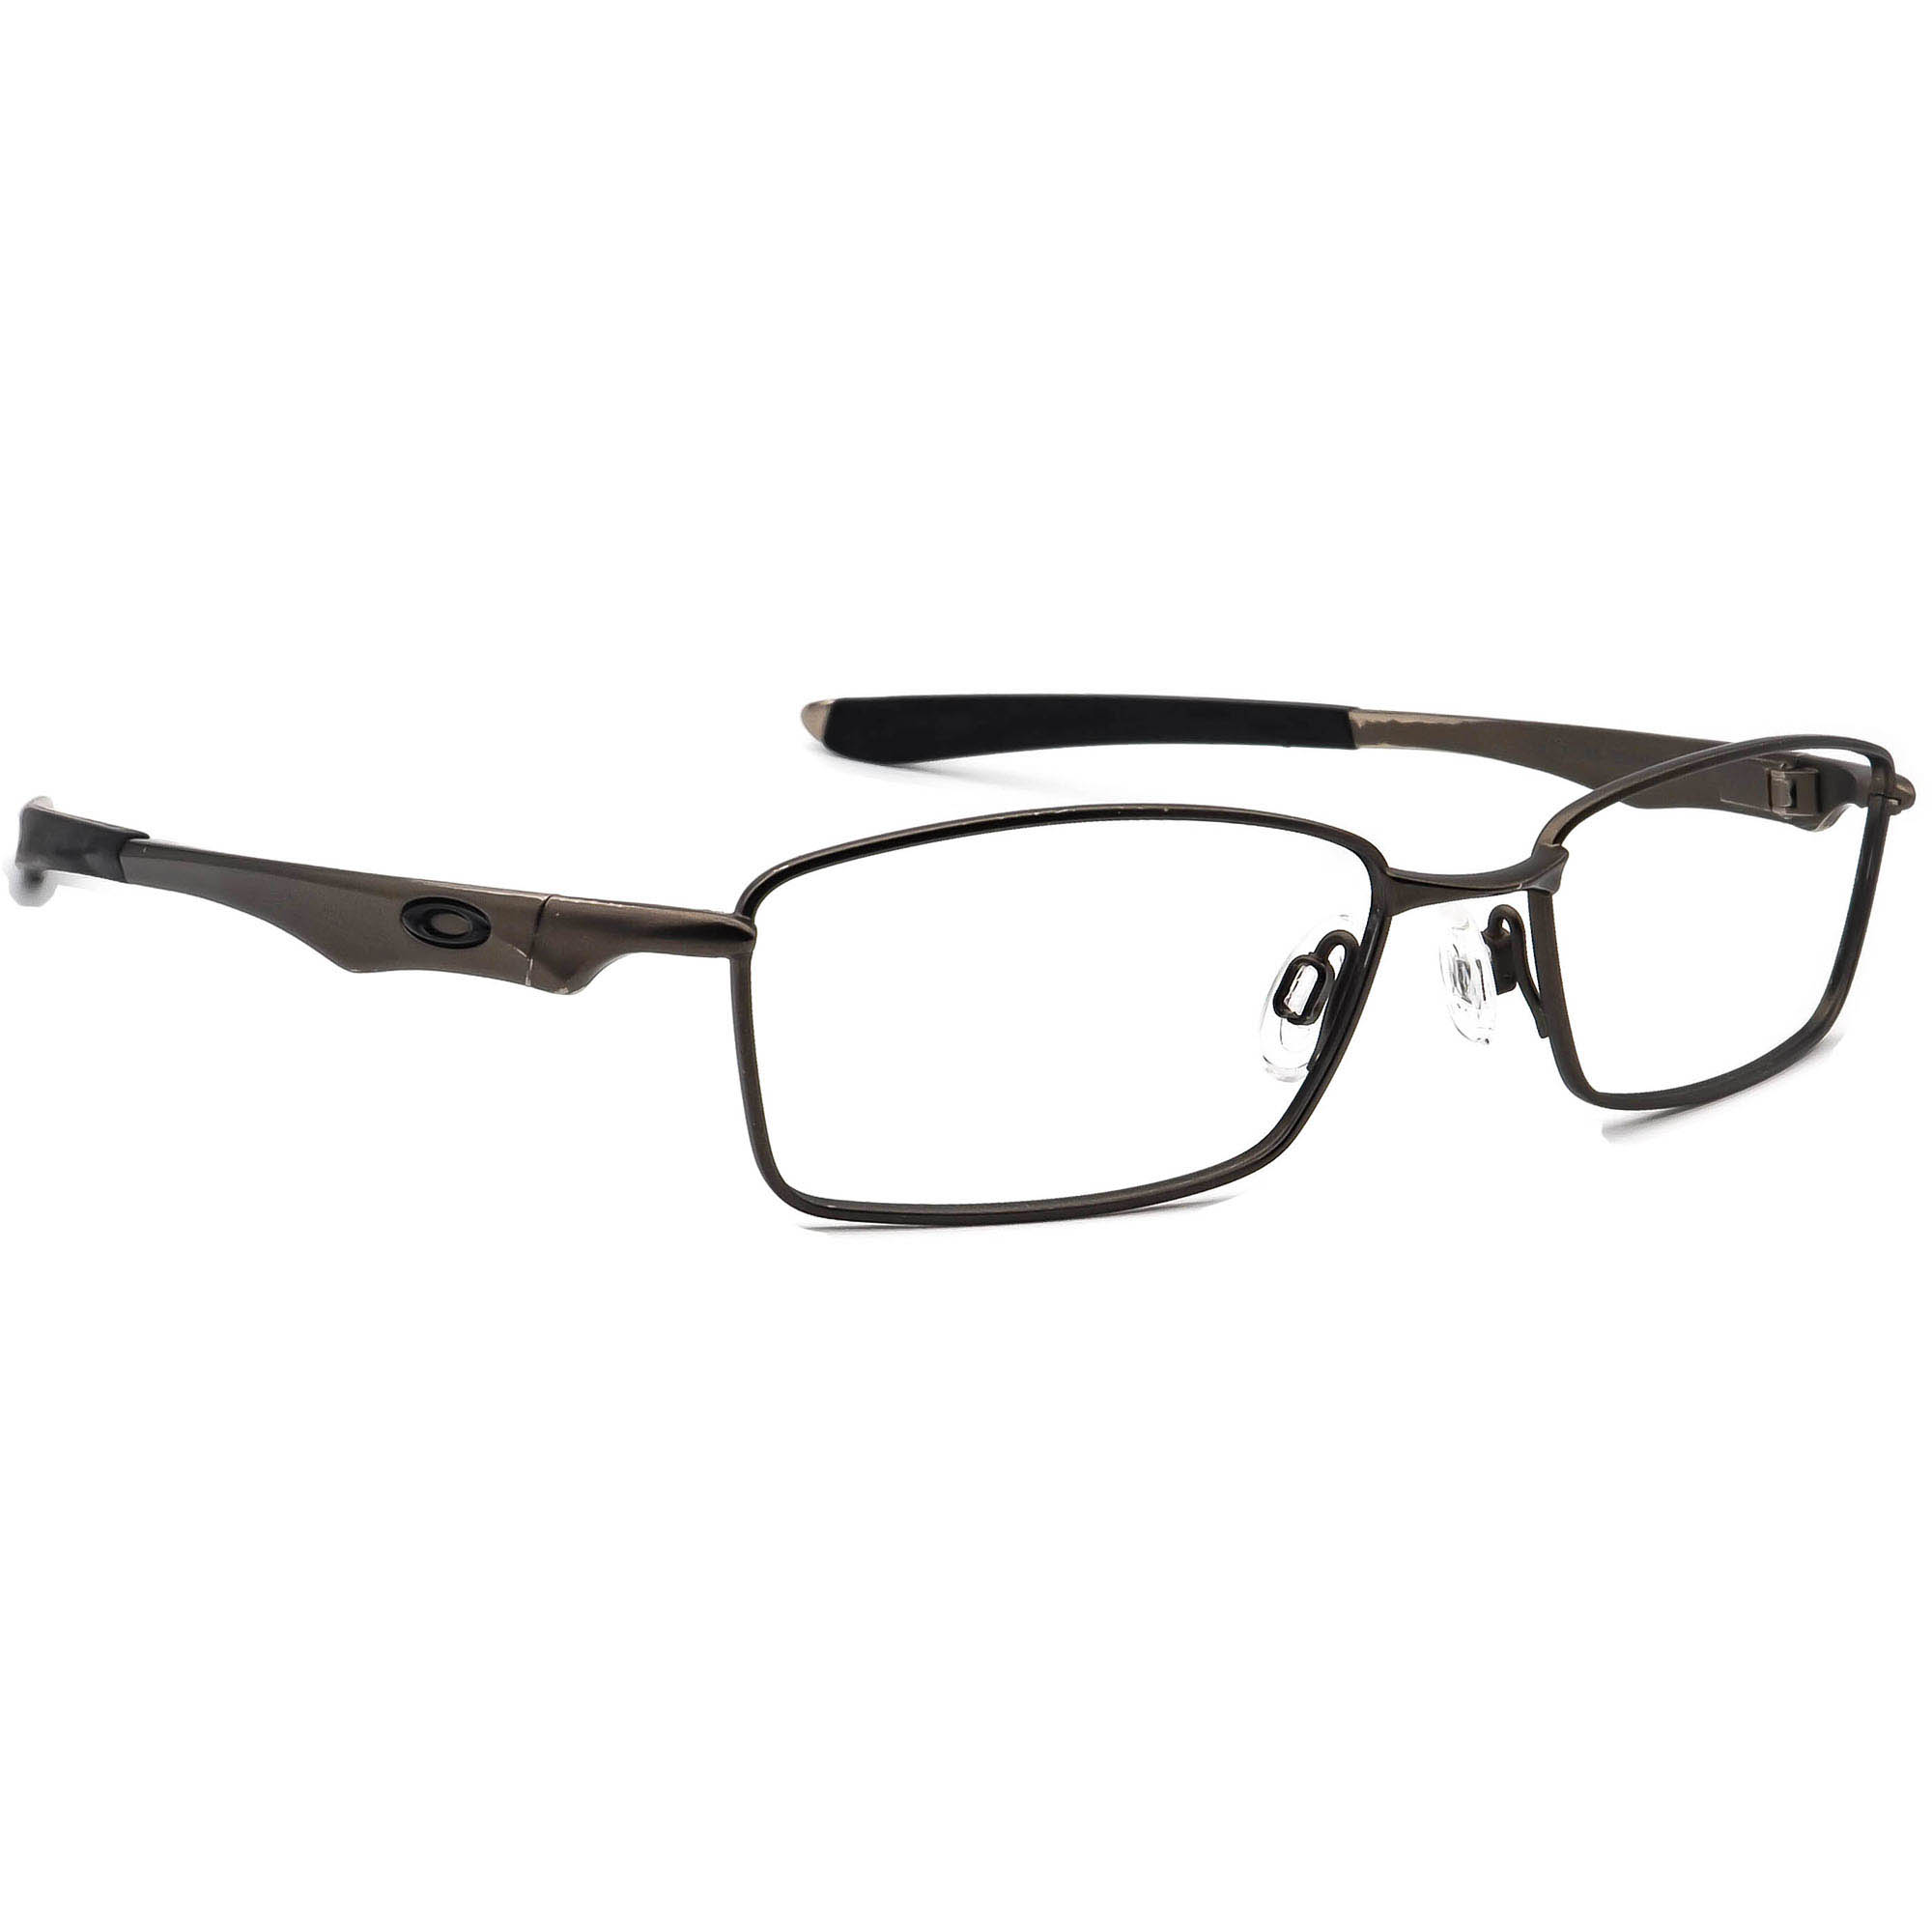 Oakley OX5040-0353 Wingspan Eyeglasses